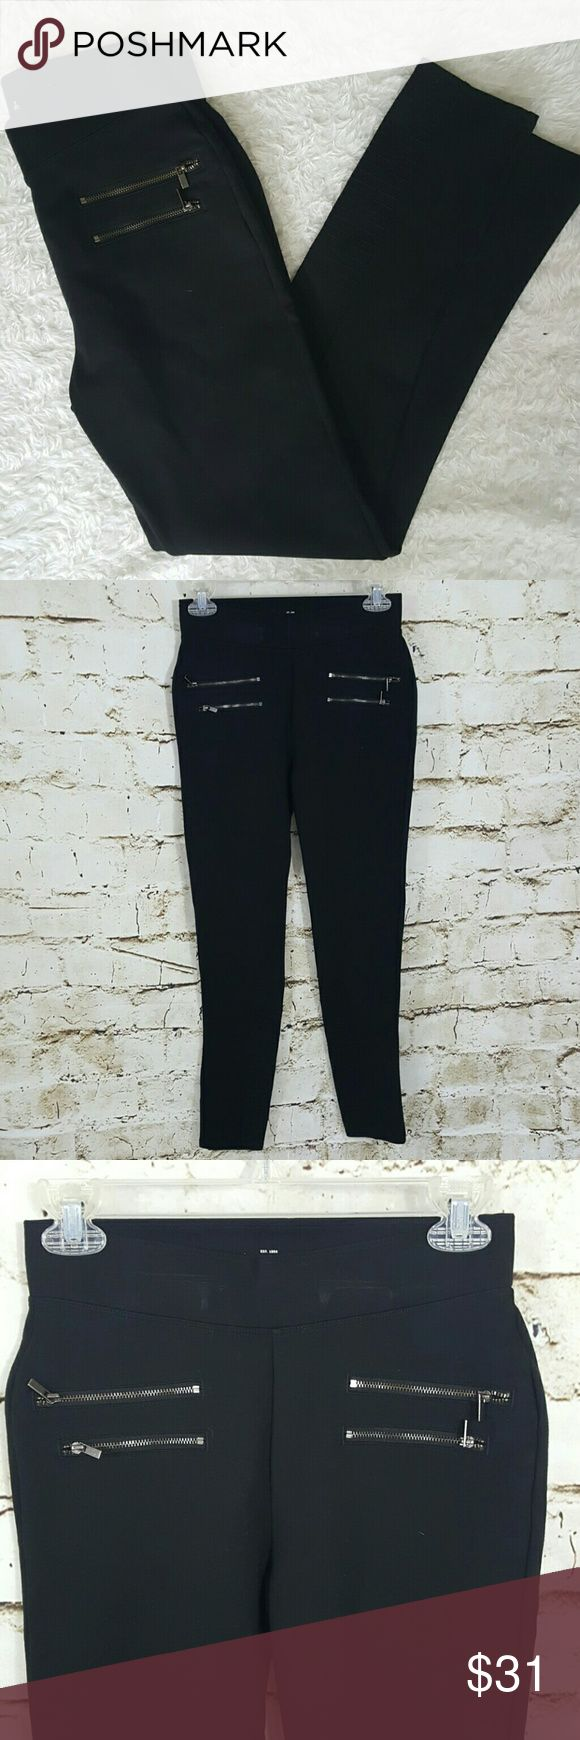 "Abercrombie and Fitch leggings Cute zipper detail on front make these leggings a bit more stylish and dressy.  You can wear high heels with these, compression body con fabric, 28"" inseam Abercrombie & Fitch Pants Leggings"